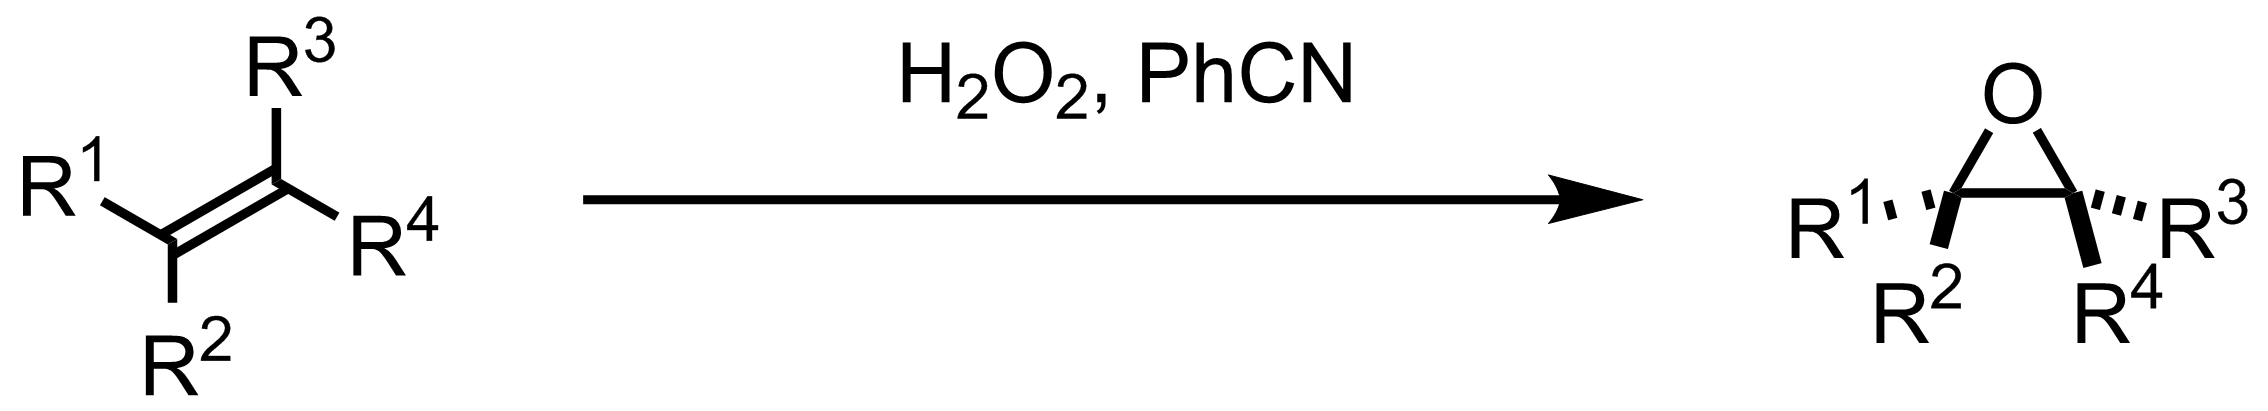 Schematic representation of the Payne Epoxidation.